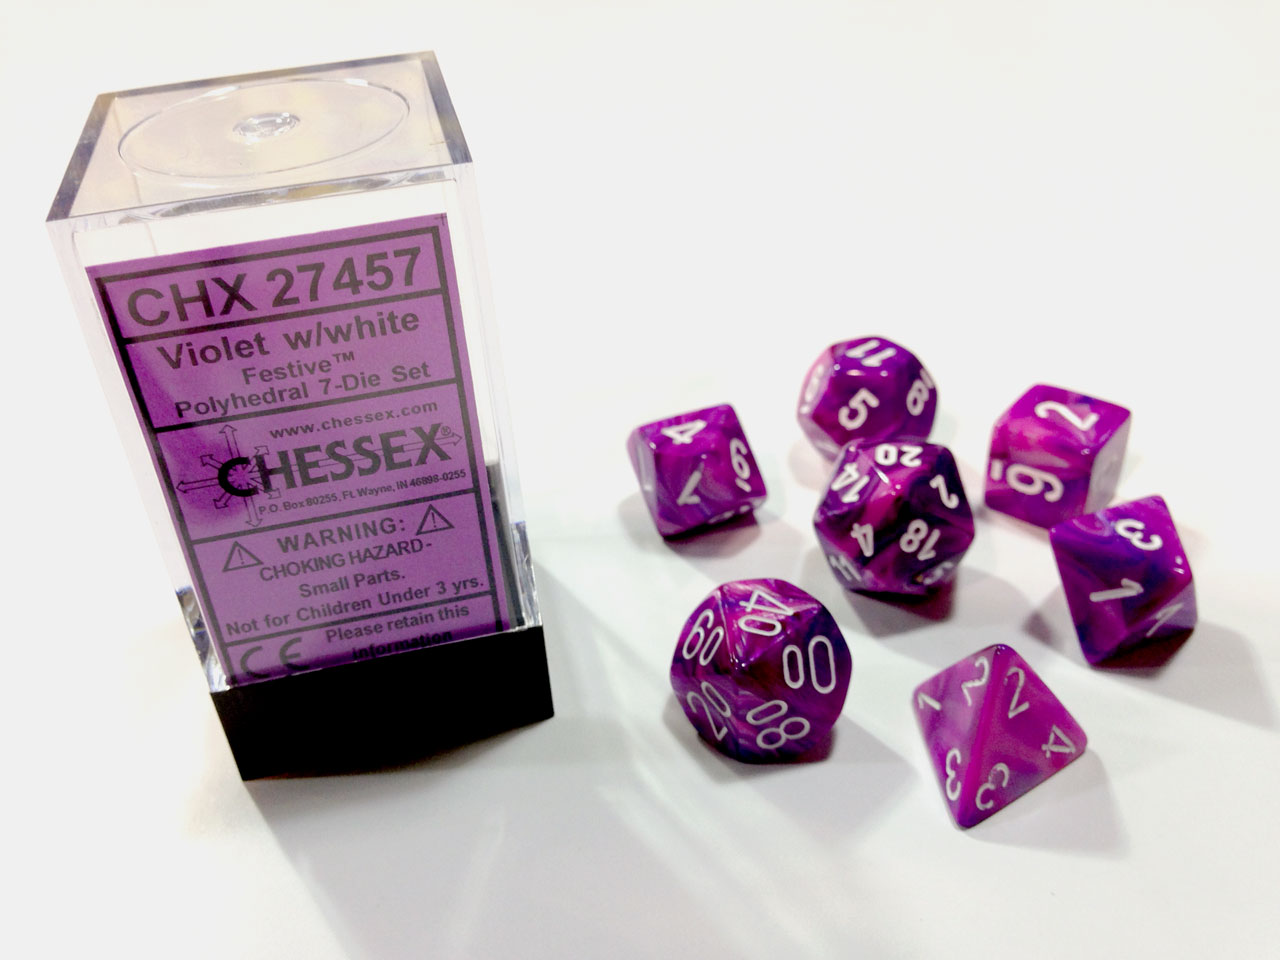 Dice 7-Piece Polyhedral Set - Festive Violet w/White